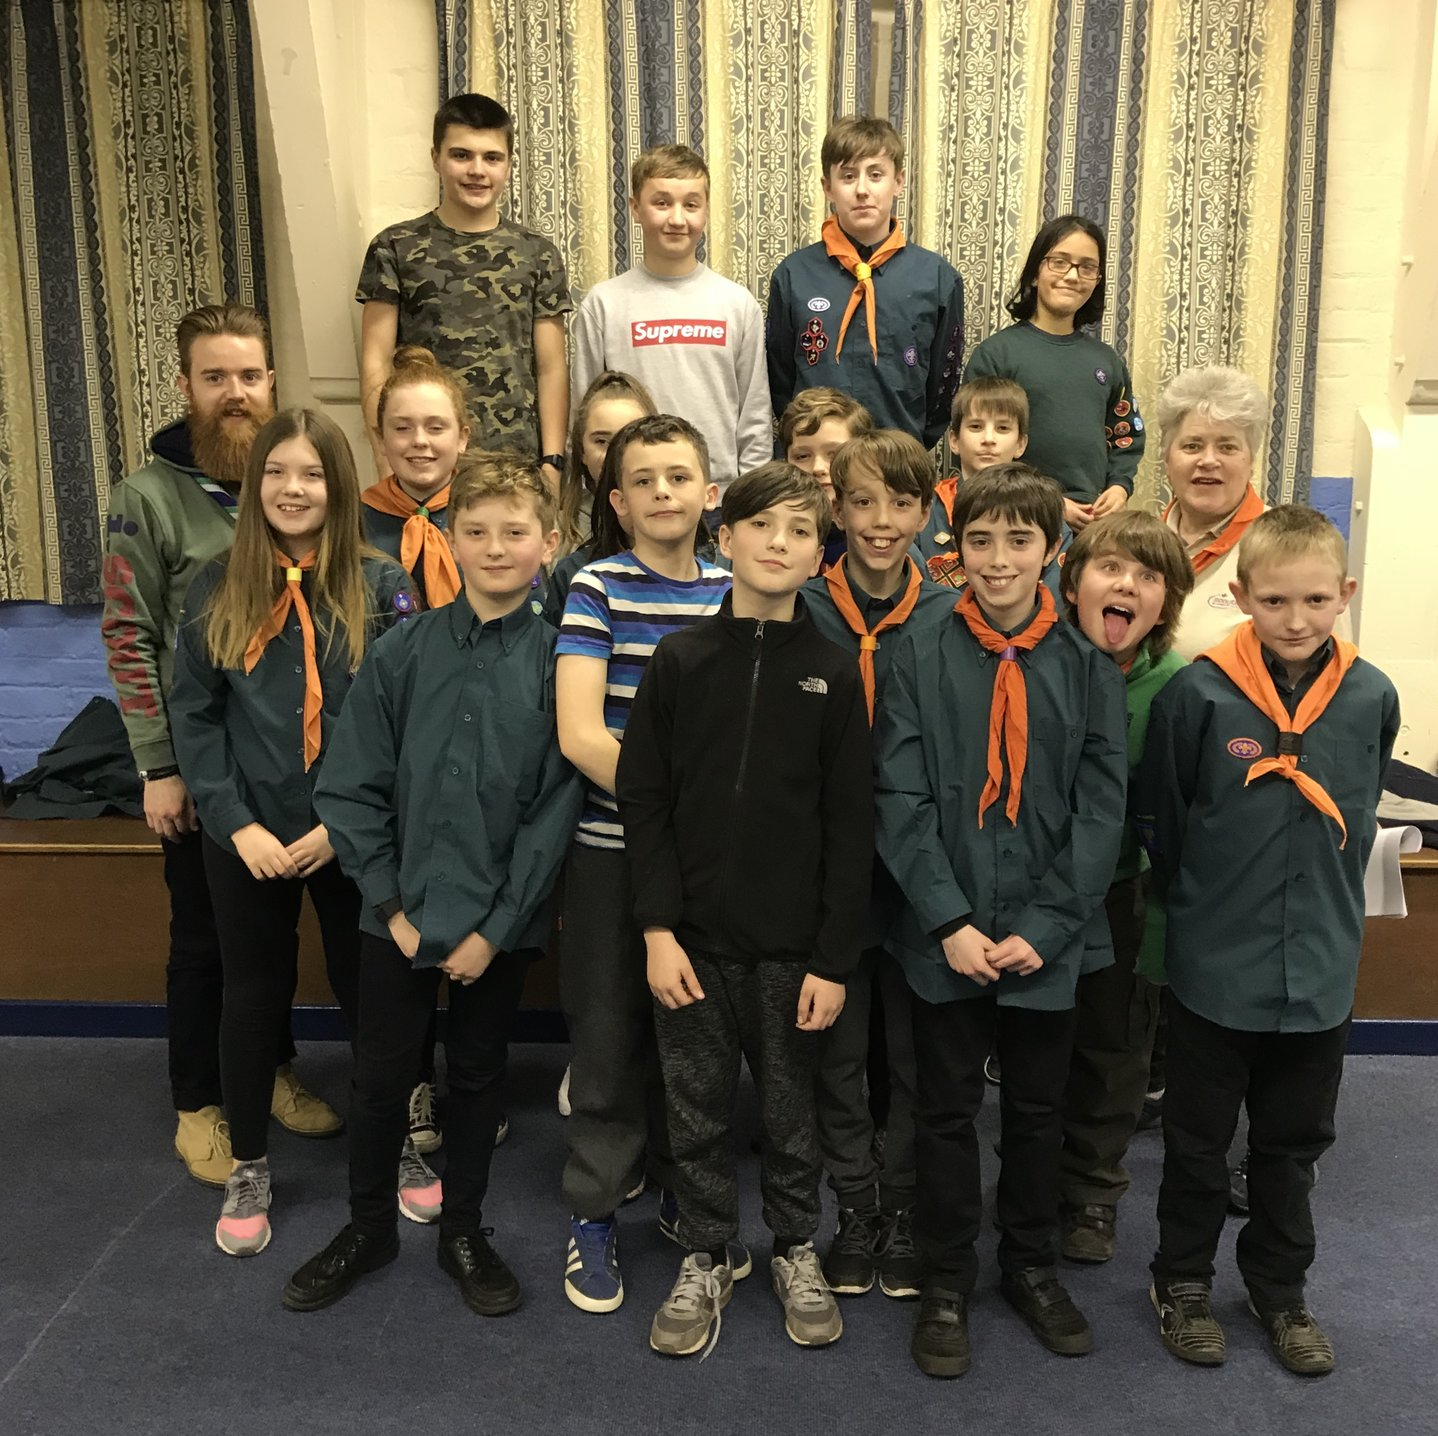 4th frodsham scouts overtonsmall